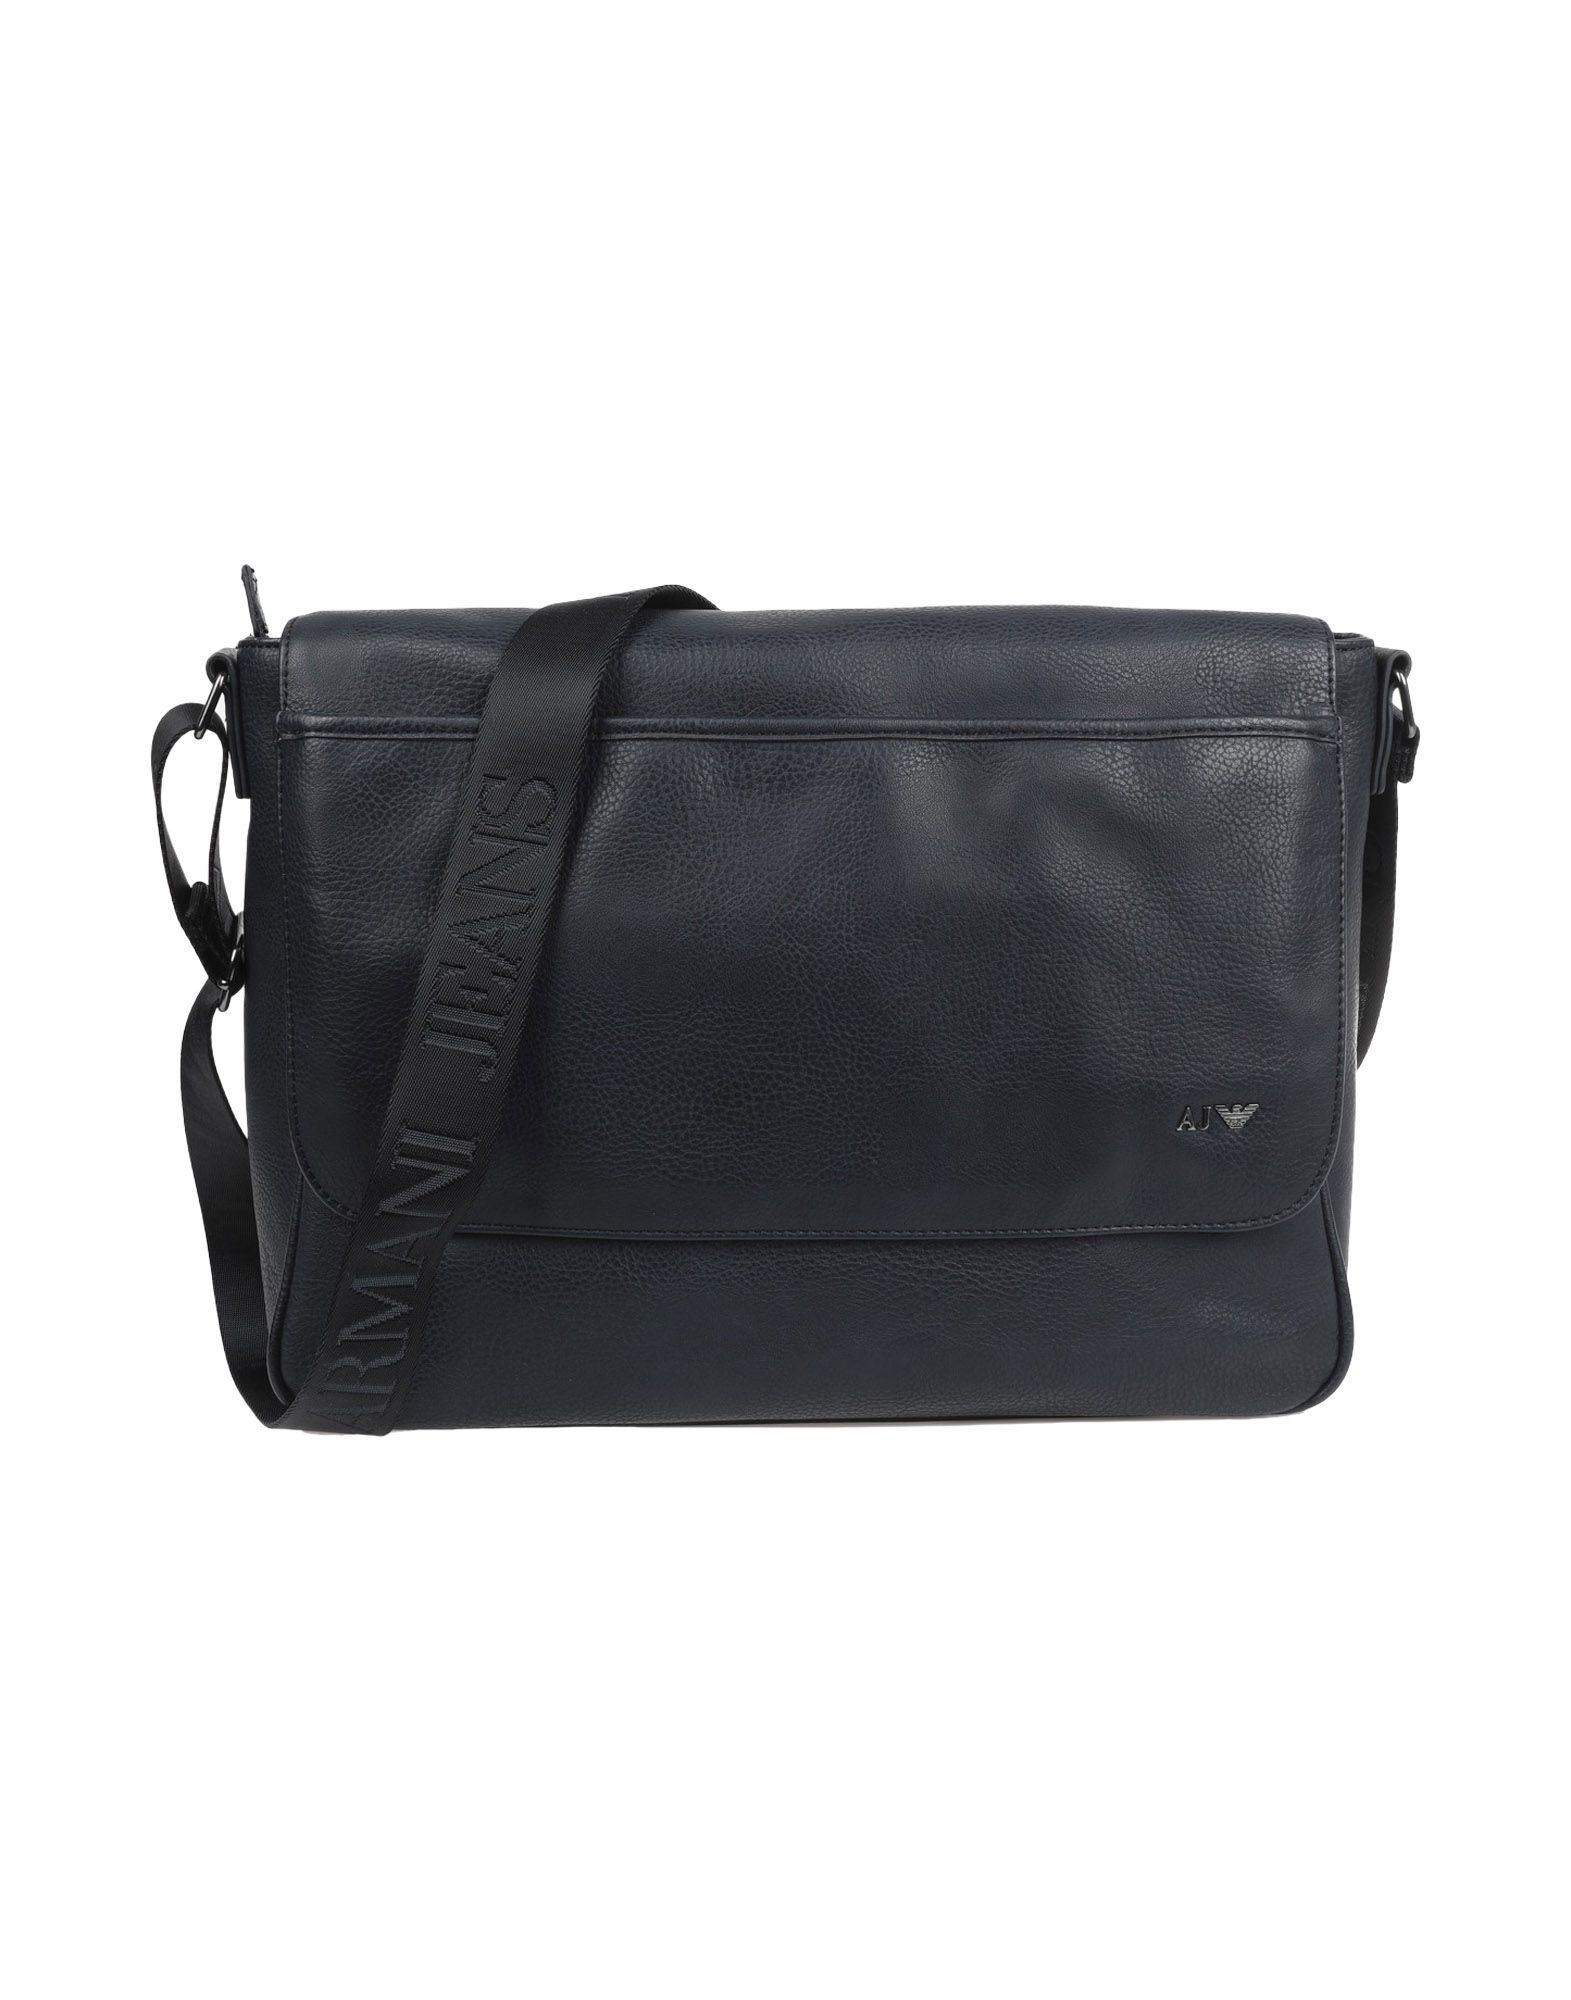 Armani Jeans Work Bags Armanijeans Bags Leather Hand Bags